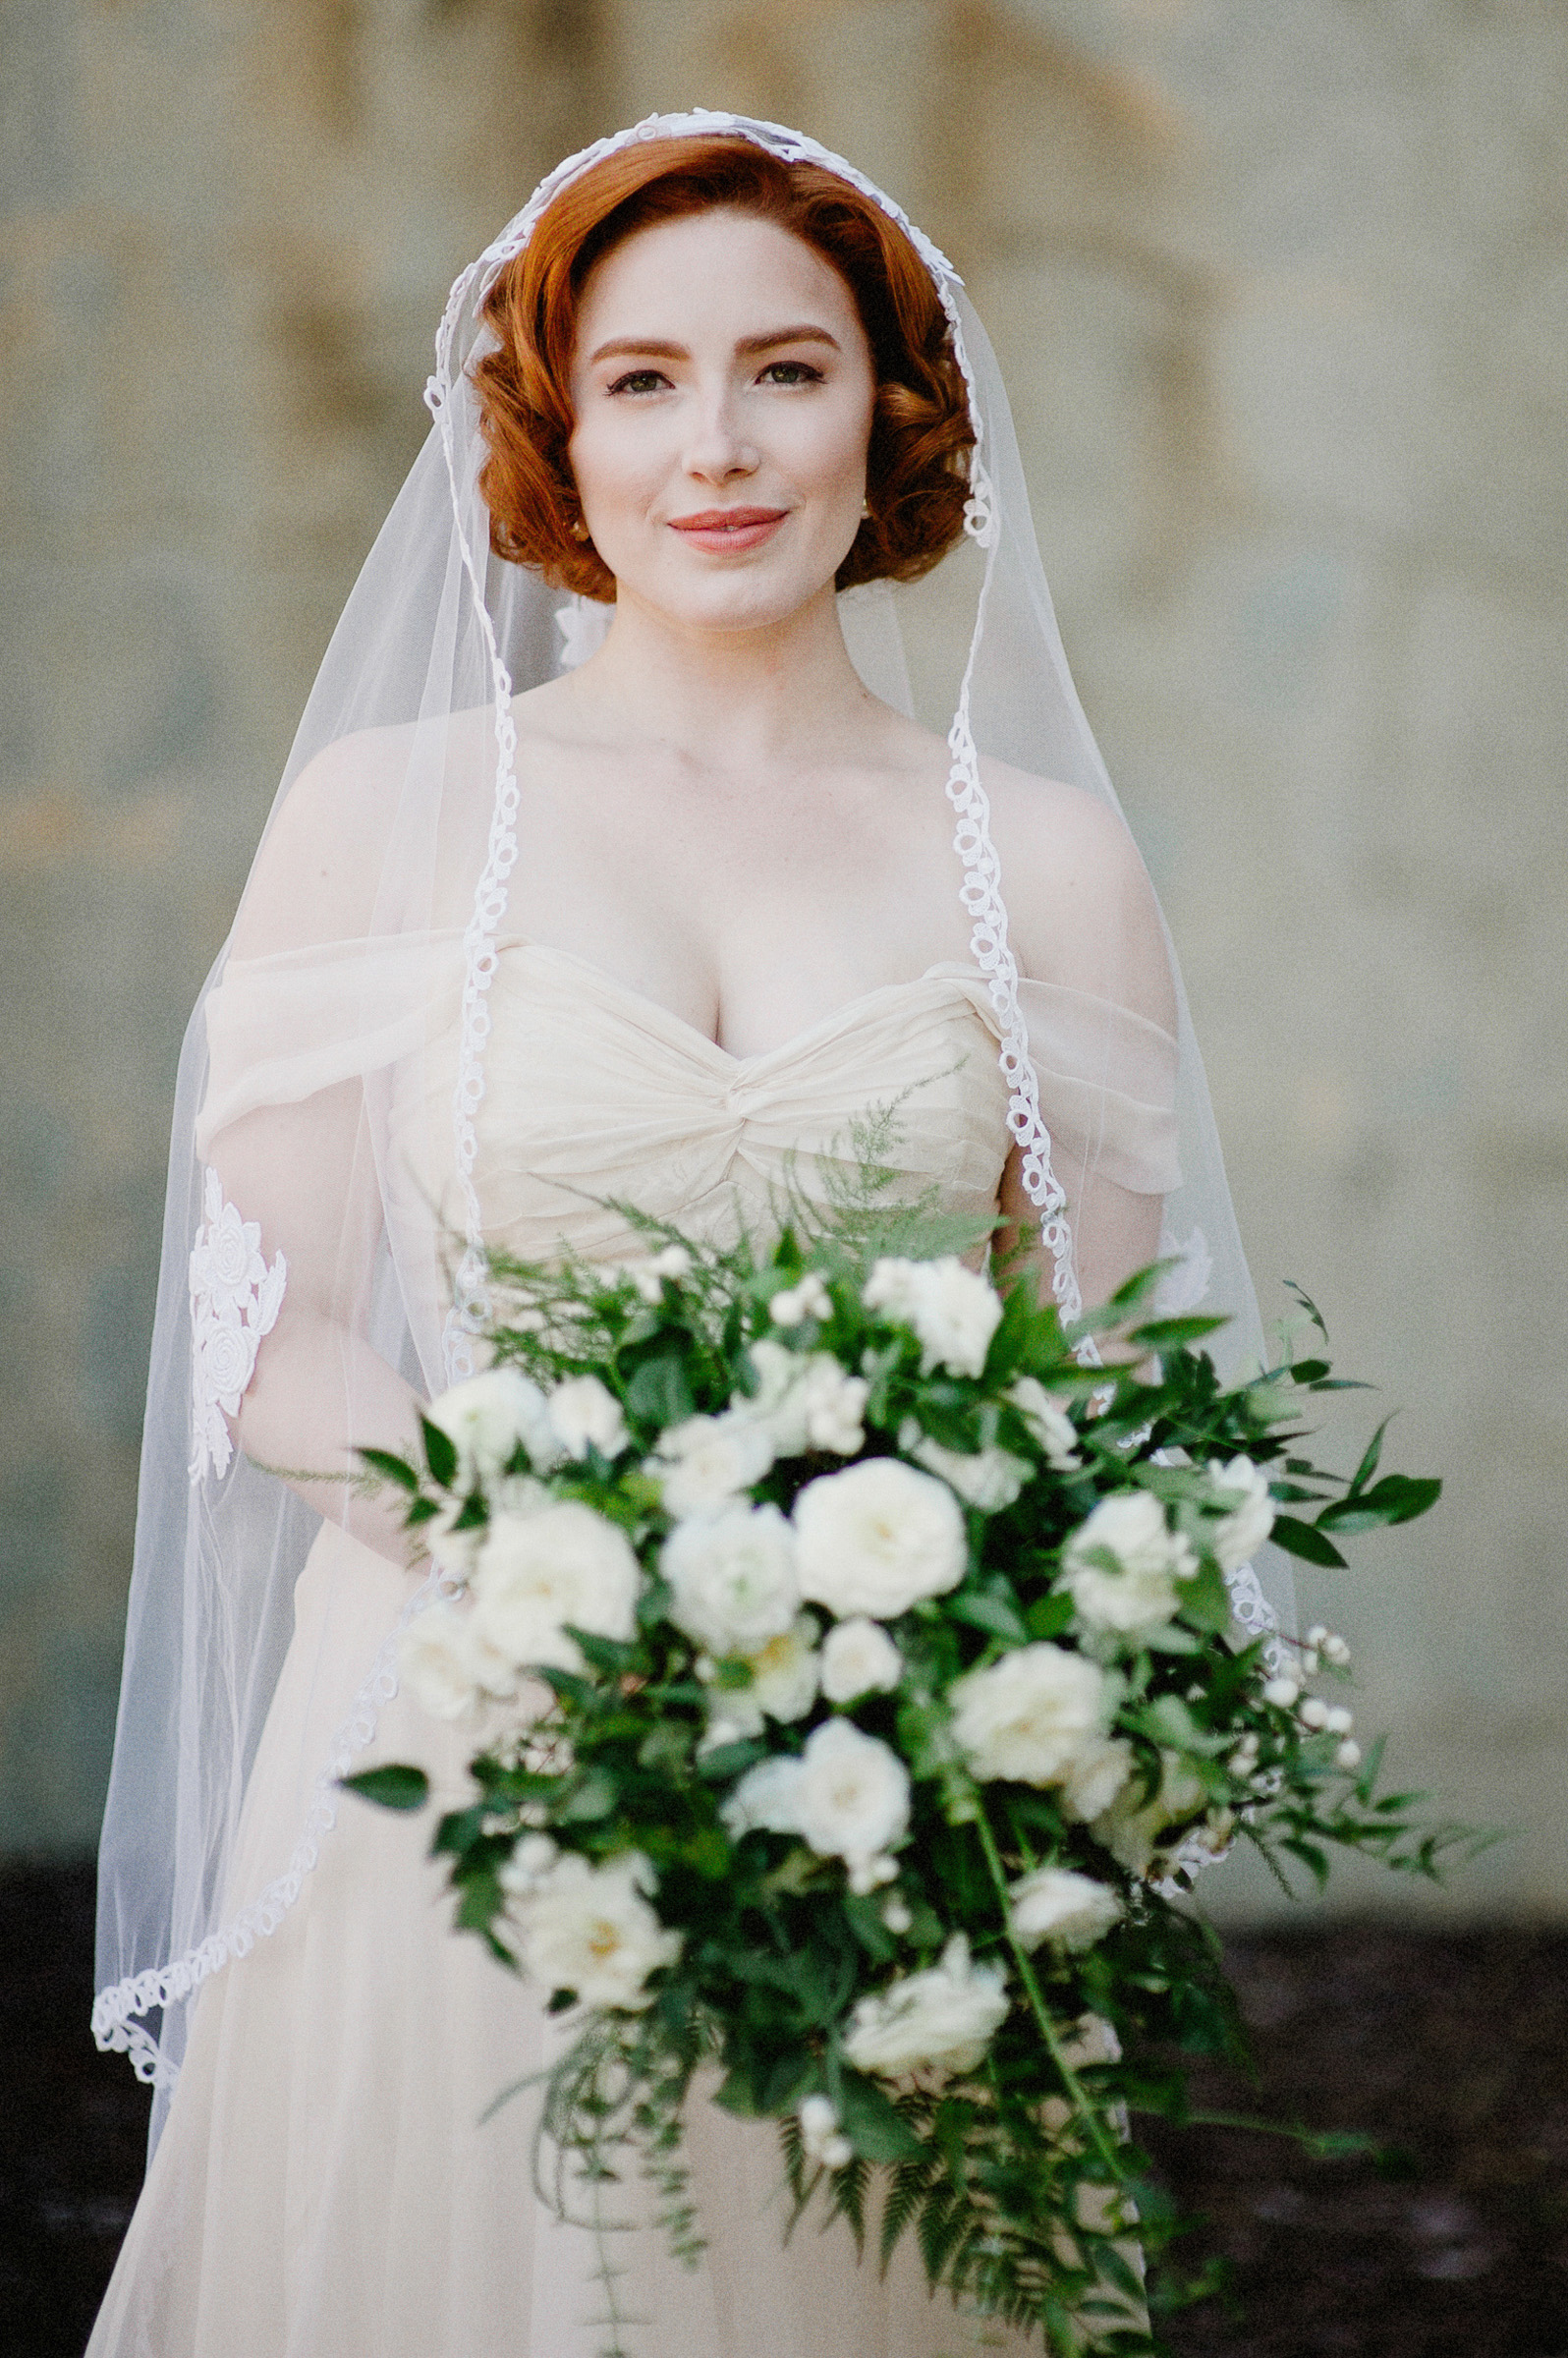 Portrait of stunning red haired bride with white rose bouquet - photo by Richard Israel Photography